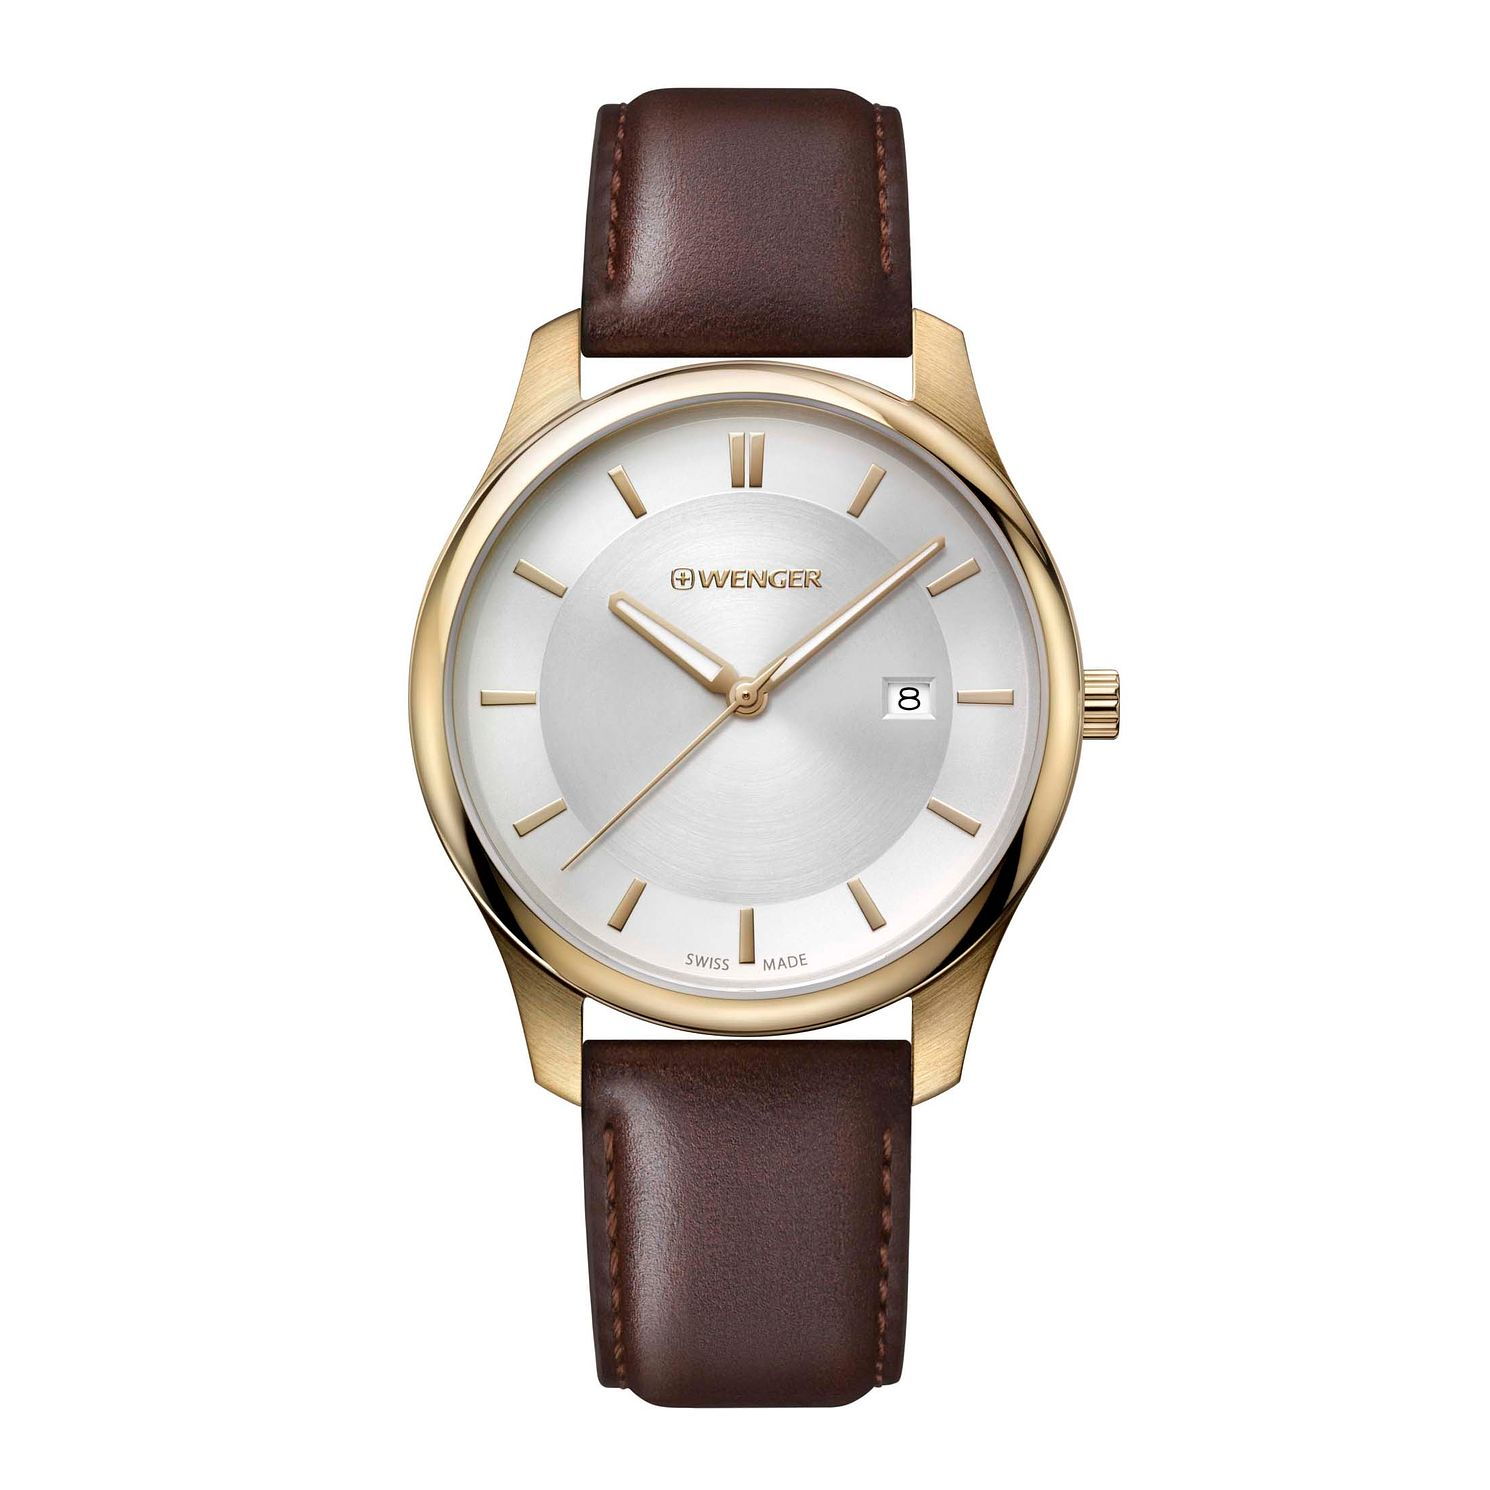 Wenger City Classic Men's Brown Leather Strap Watch - Product number 8368066